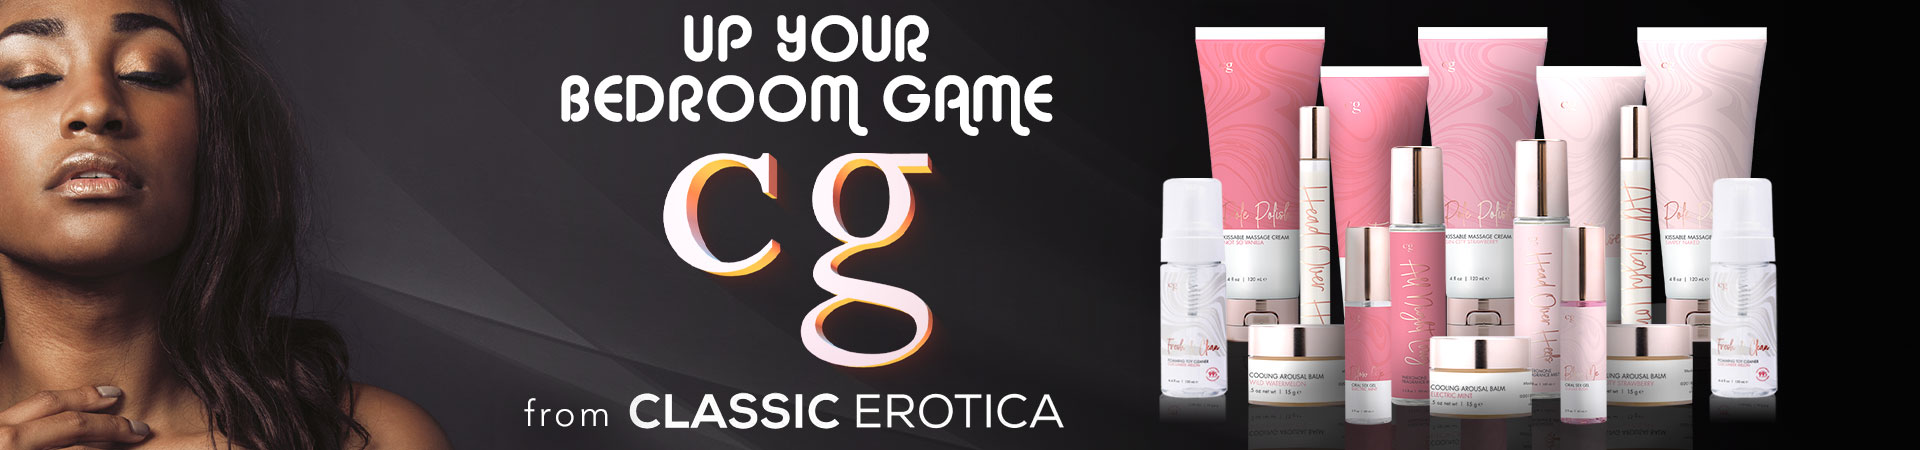 Up Your Bedroom Game By CG From Classic Erotica